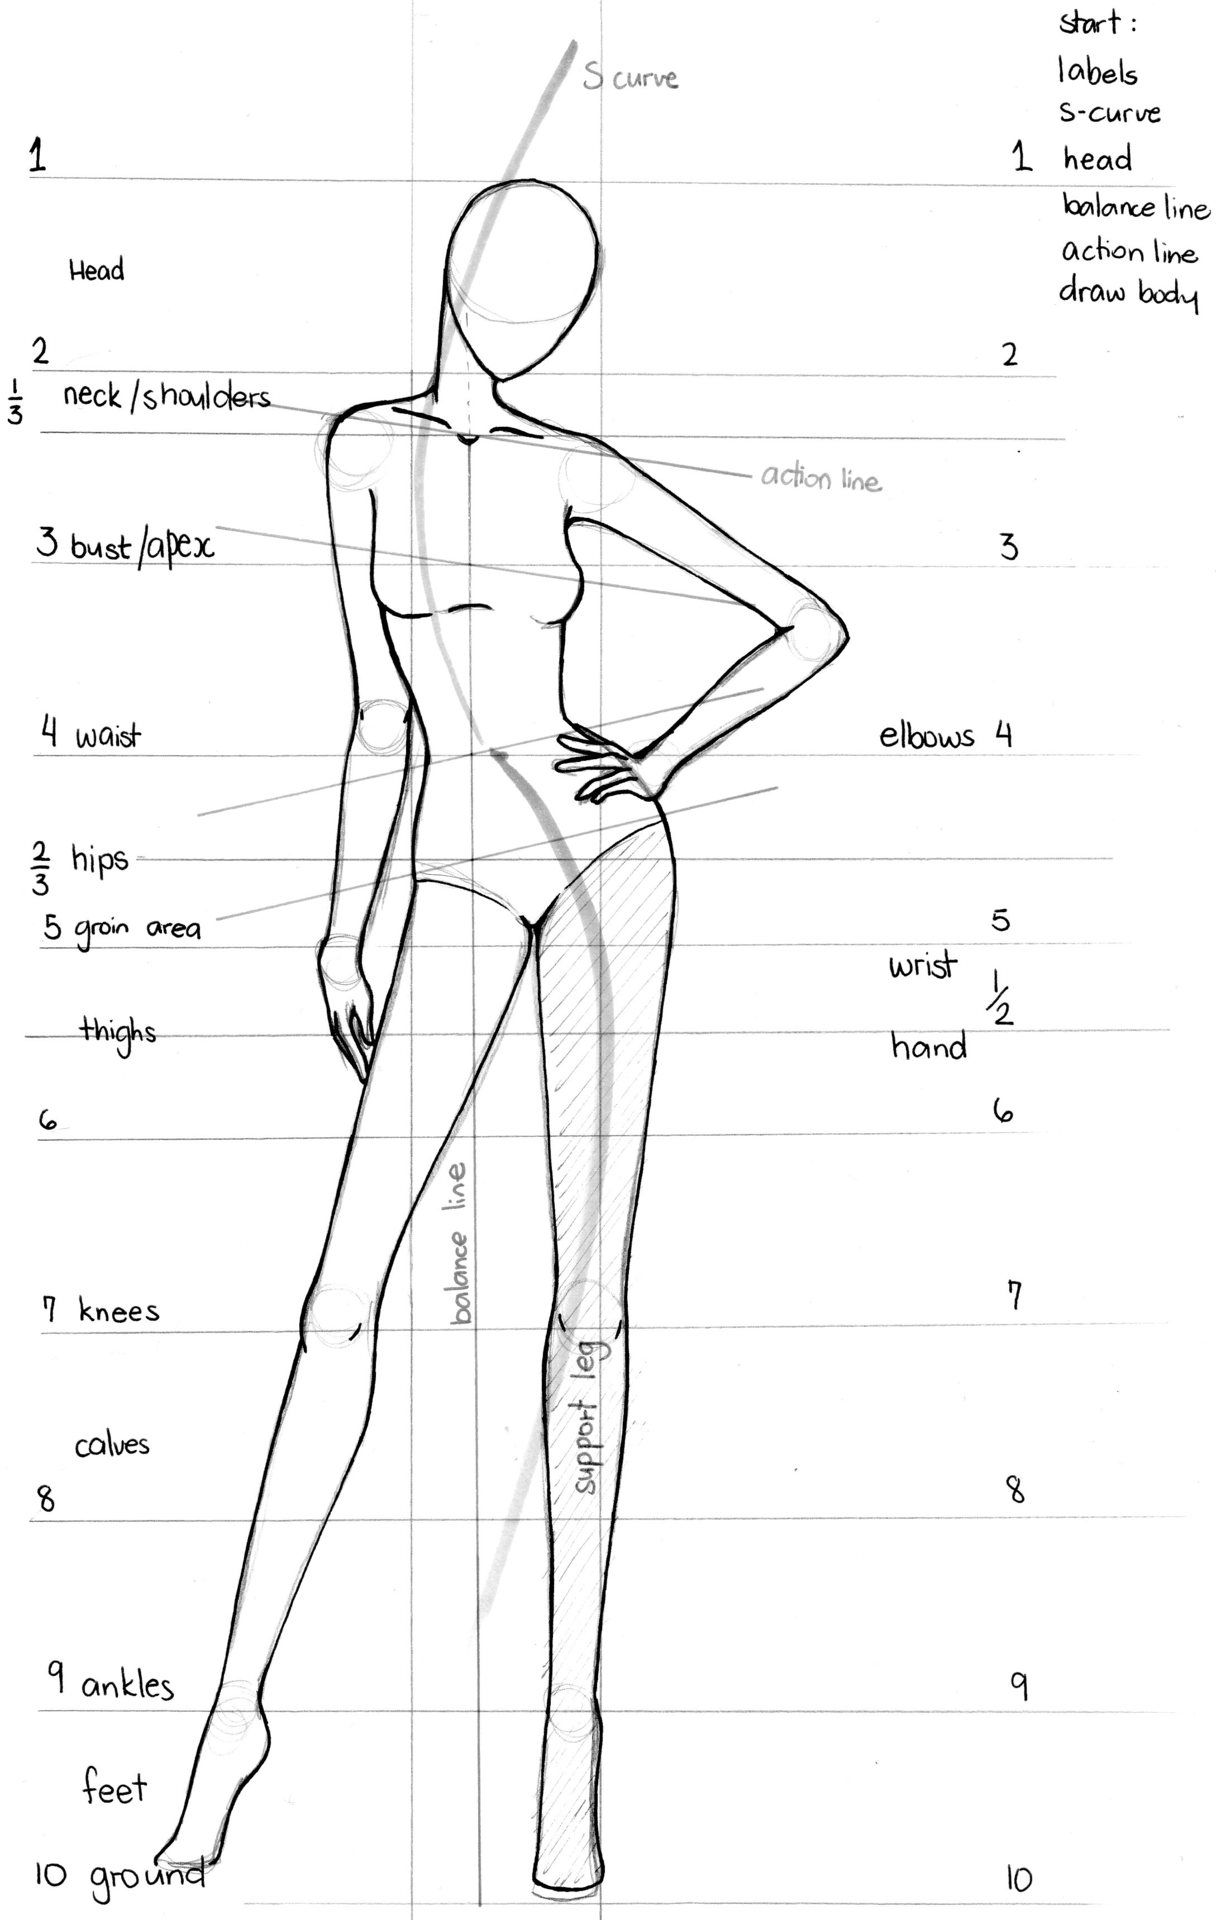 Force Character Design From Life Drawing Pdf Free : Lovetheart fashion illustration sketches this